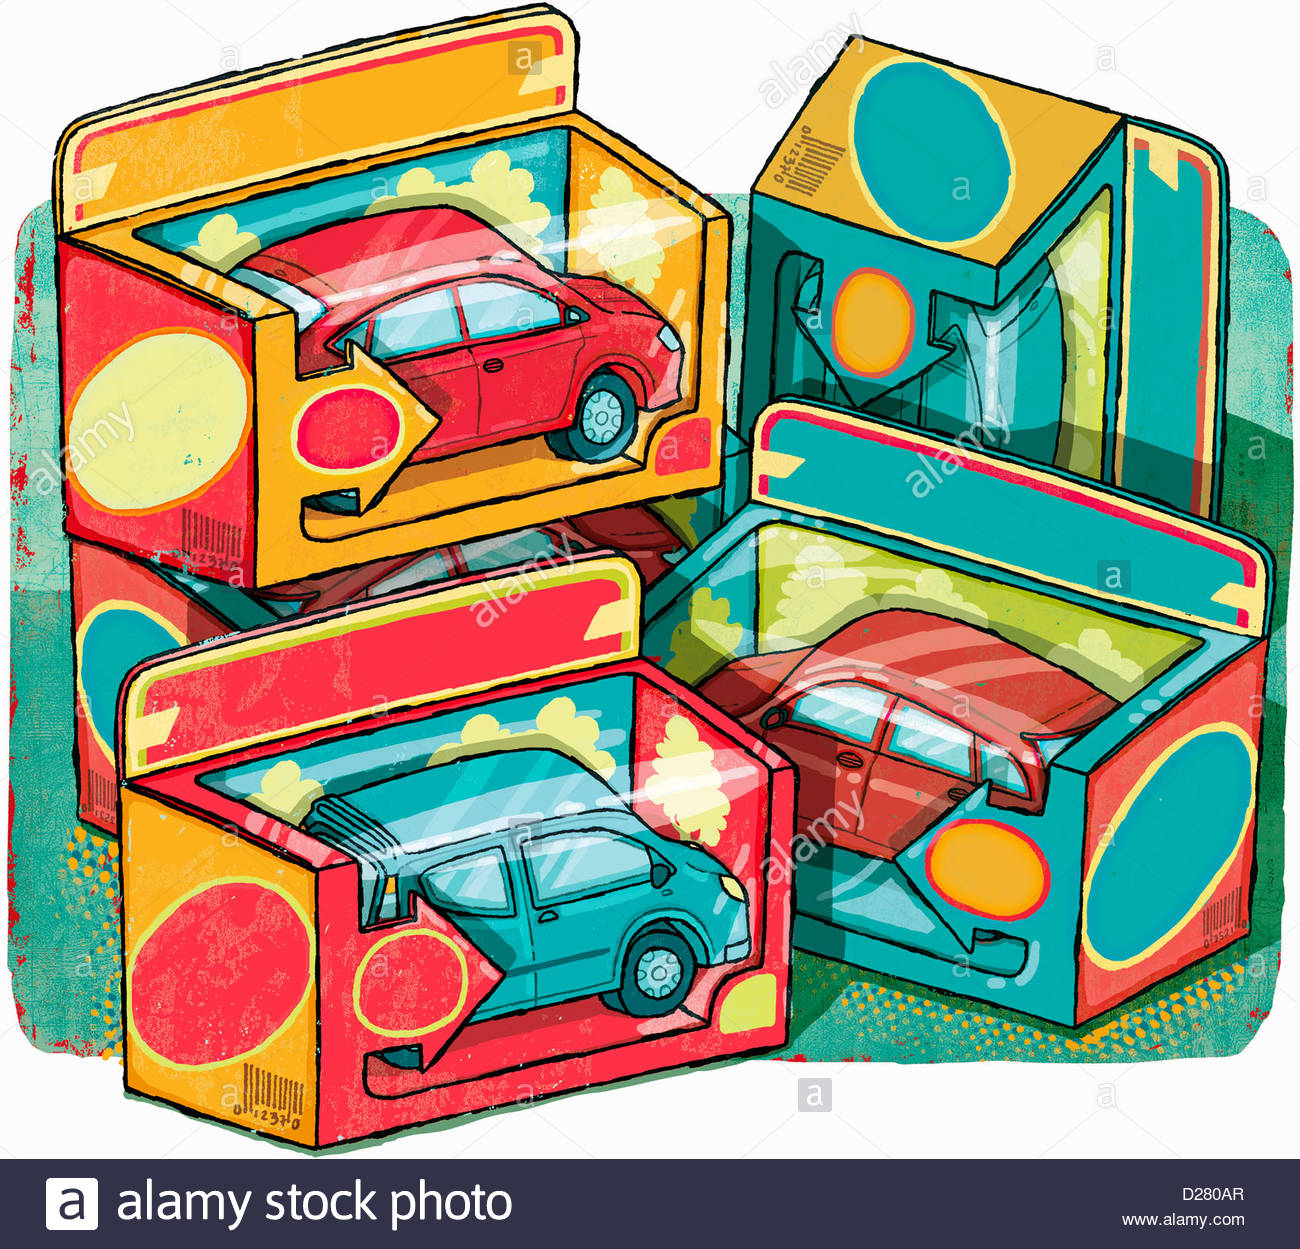 Boxes of collectible cars - Stock Image